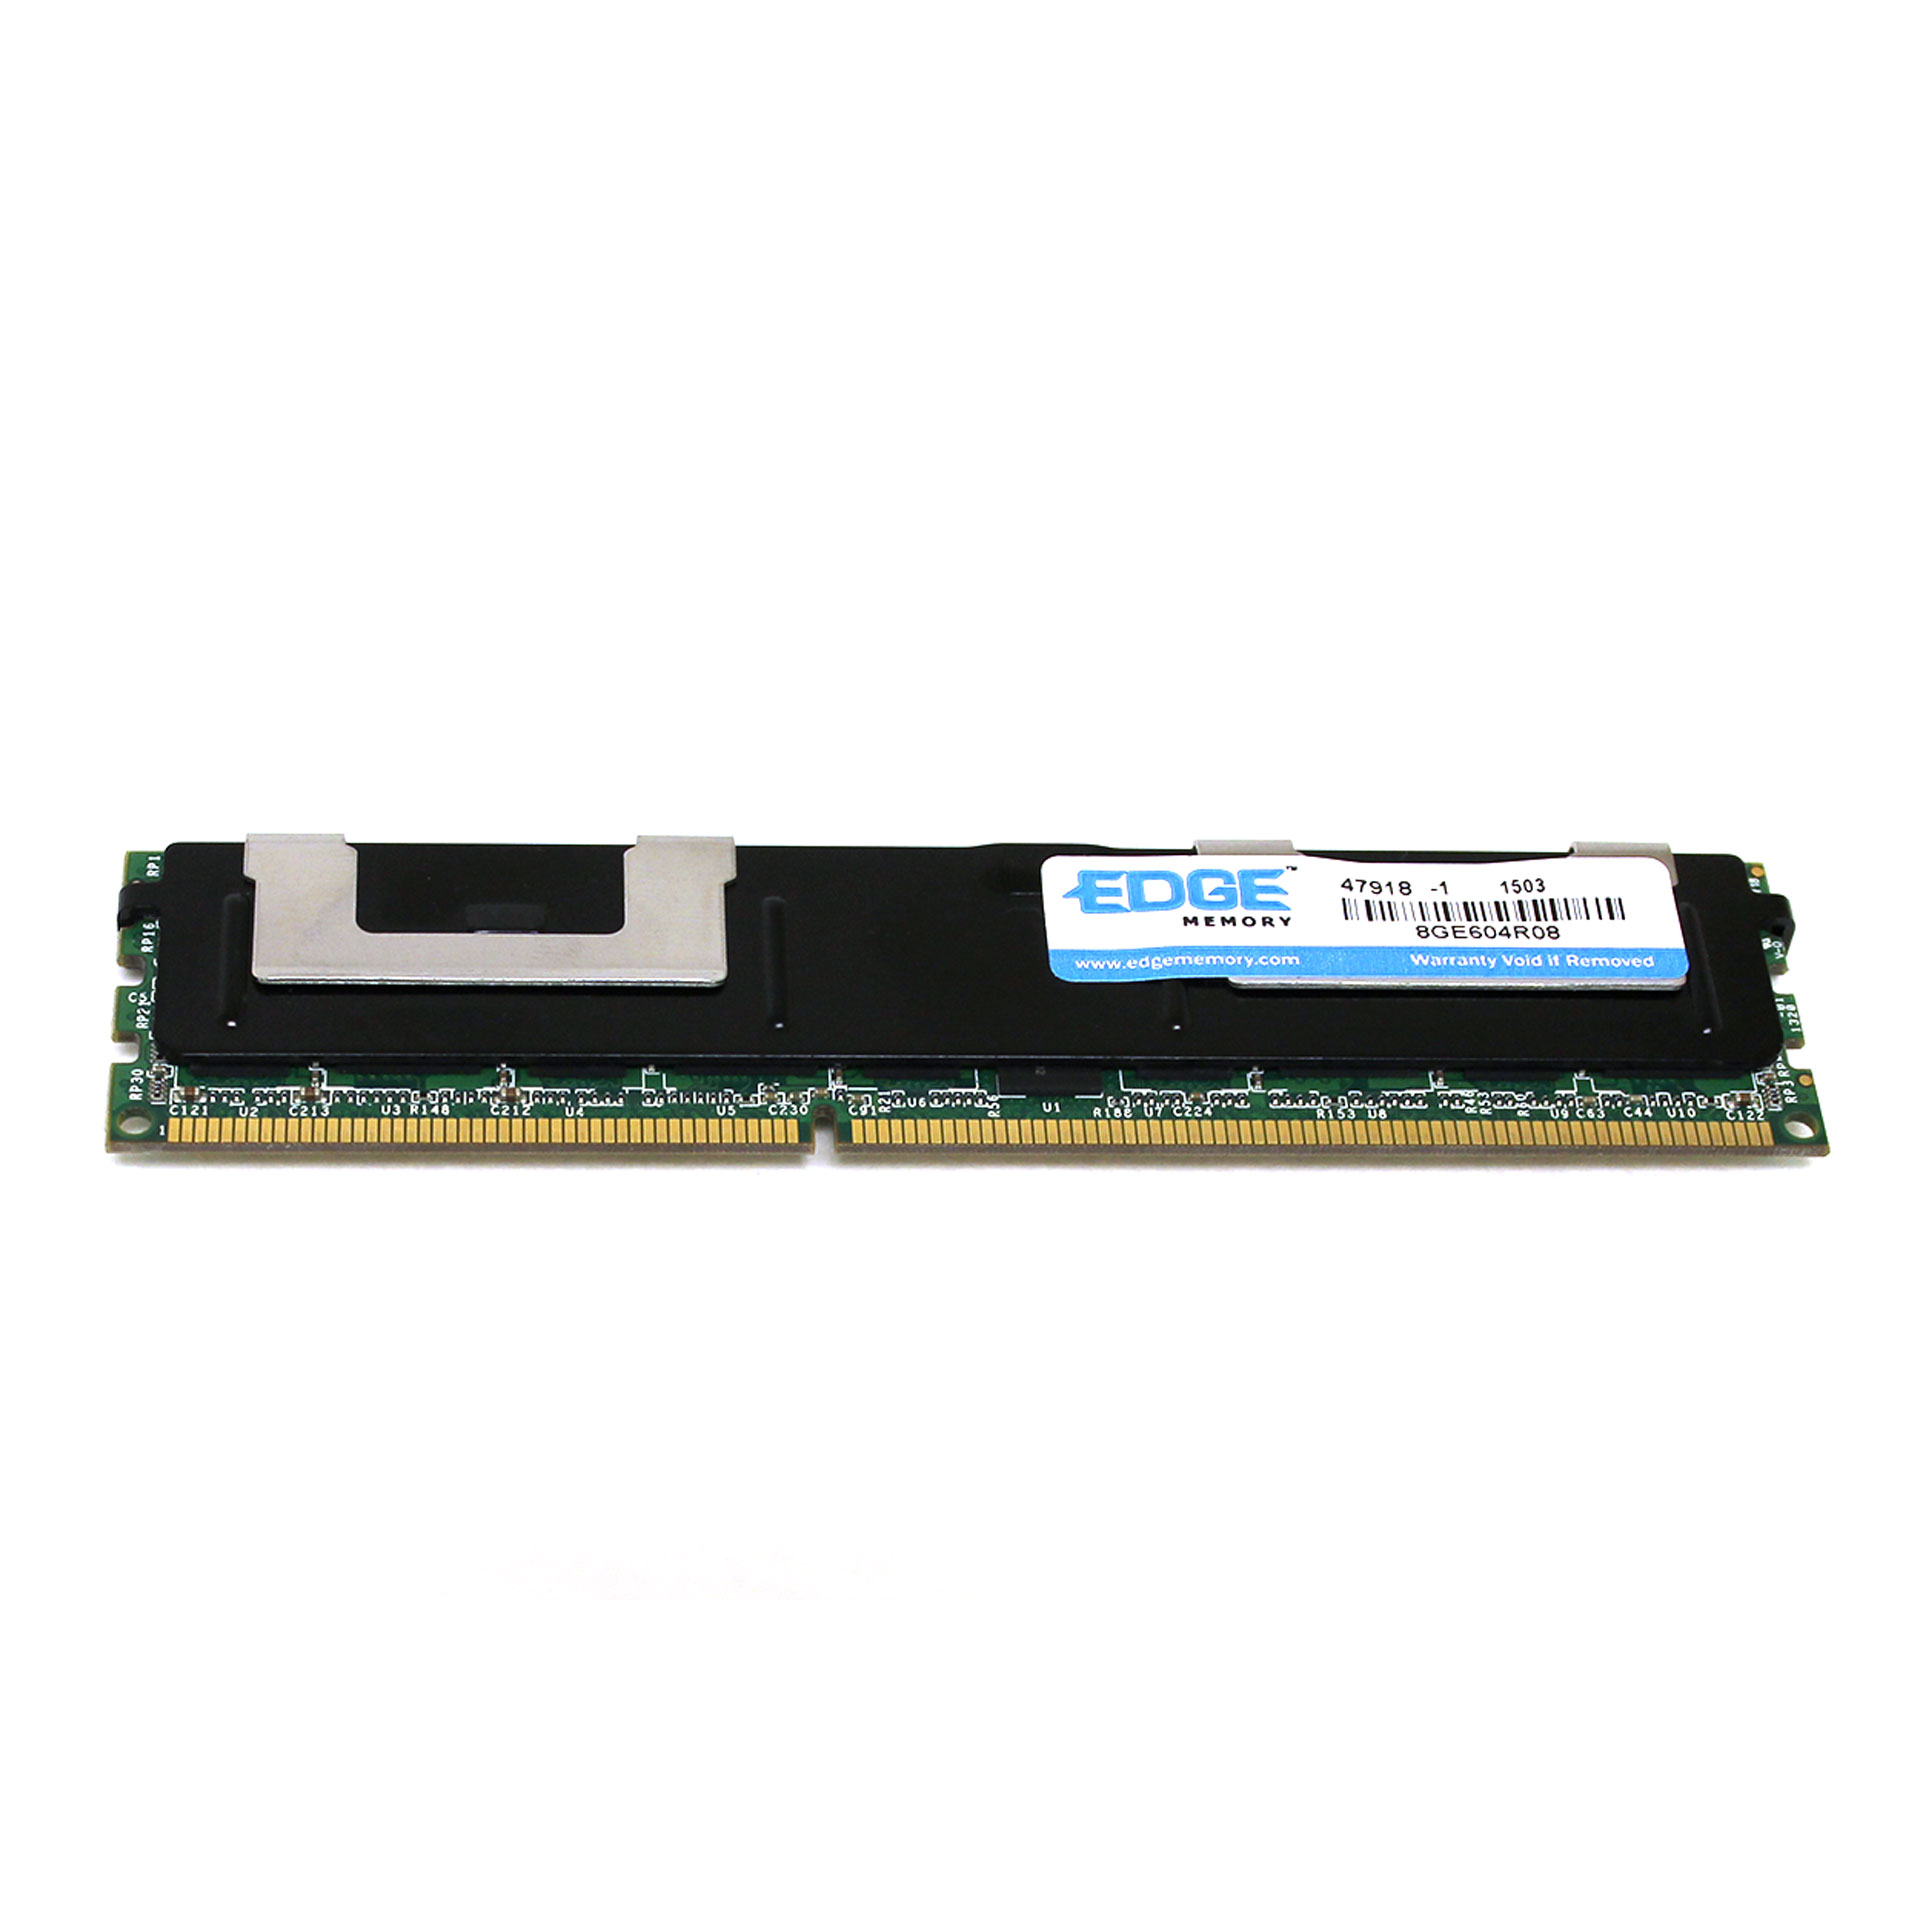 8GB EDGE PE226701 DDR3 DIMM 240-pin PC#-8500 1066 MHz